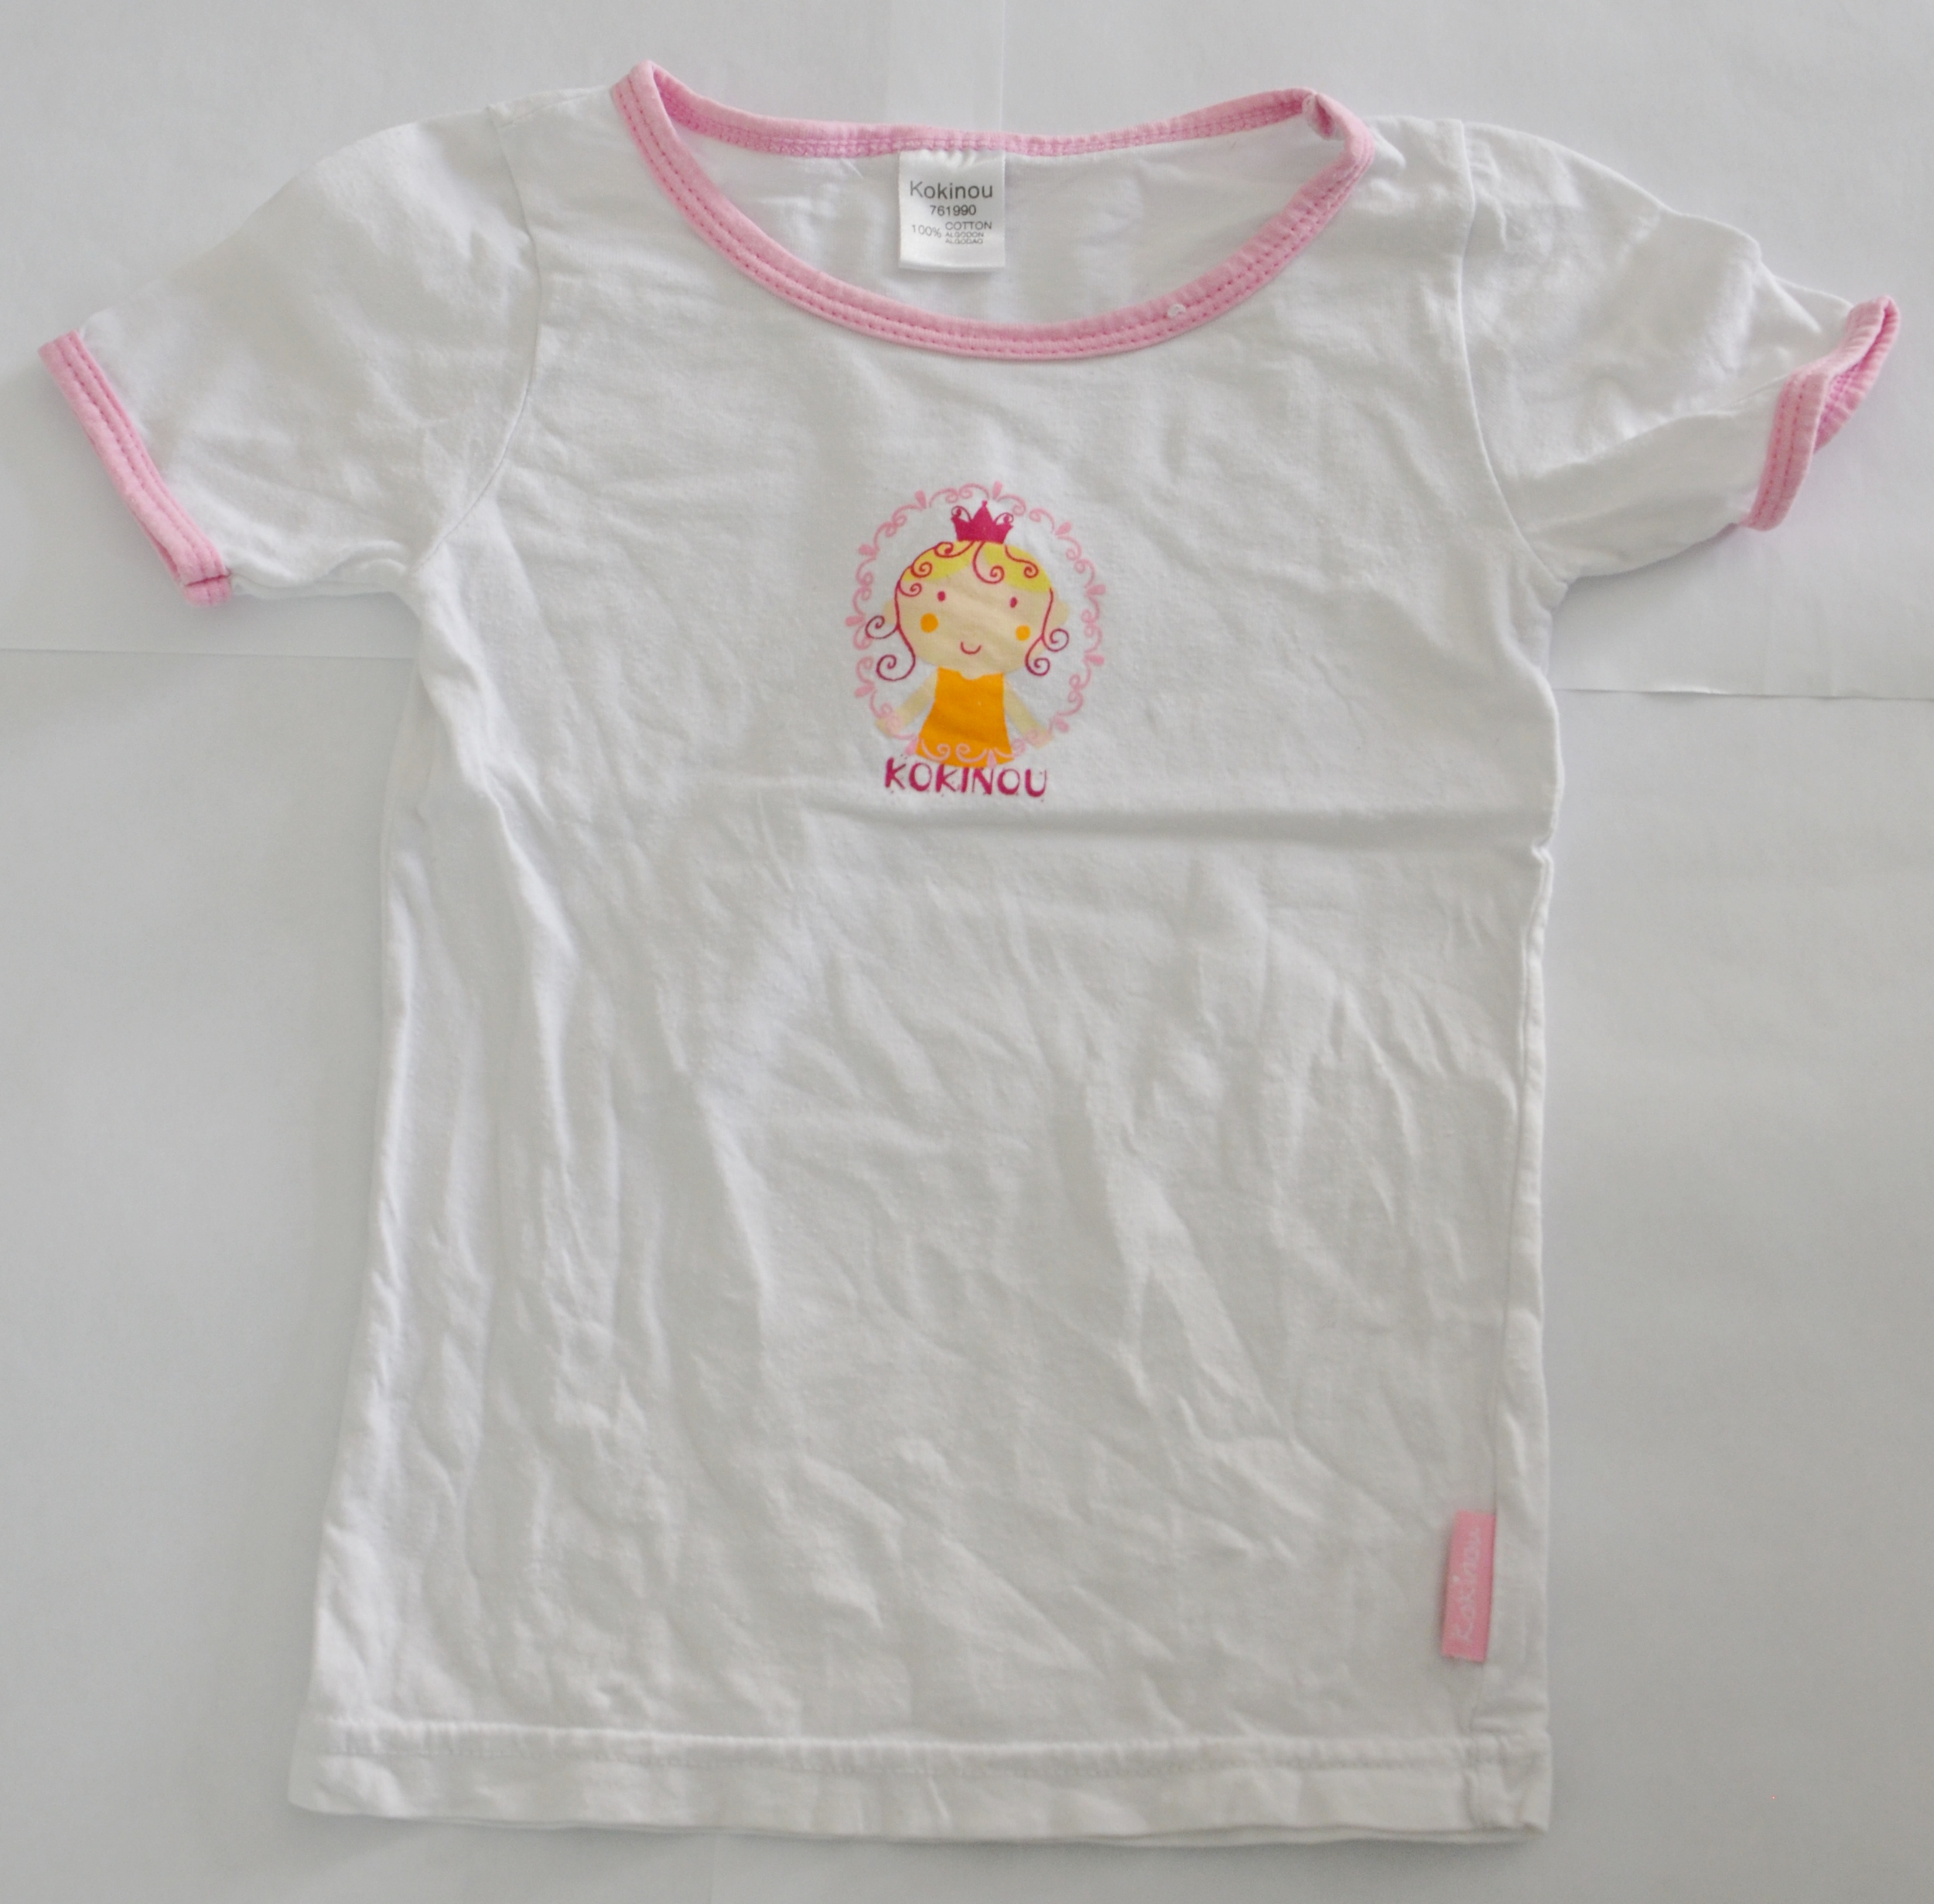 maillot fille 2-3 ans kokinou blanc et rose occasion